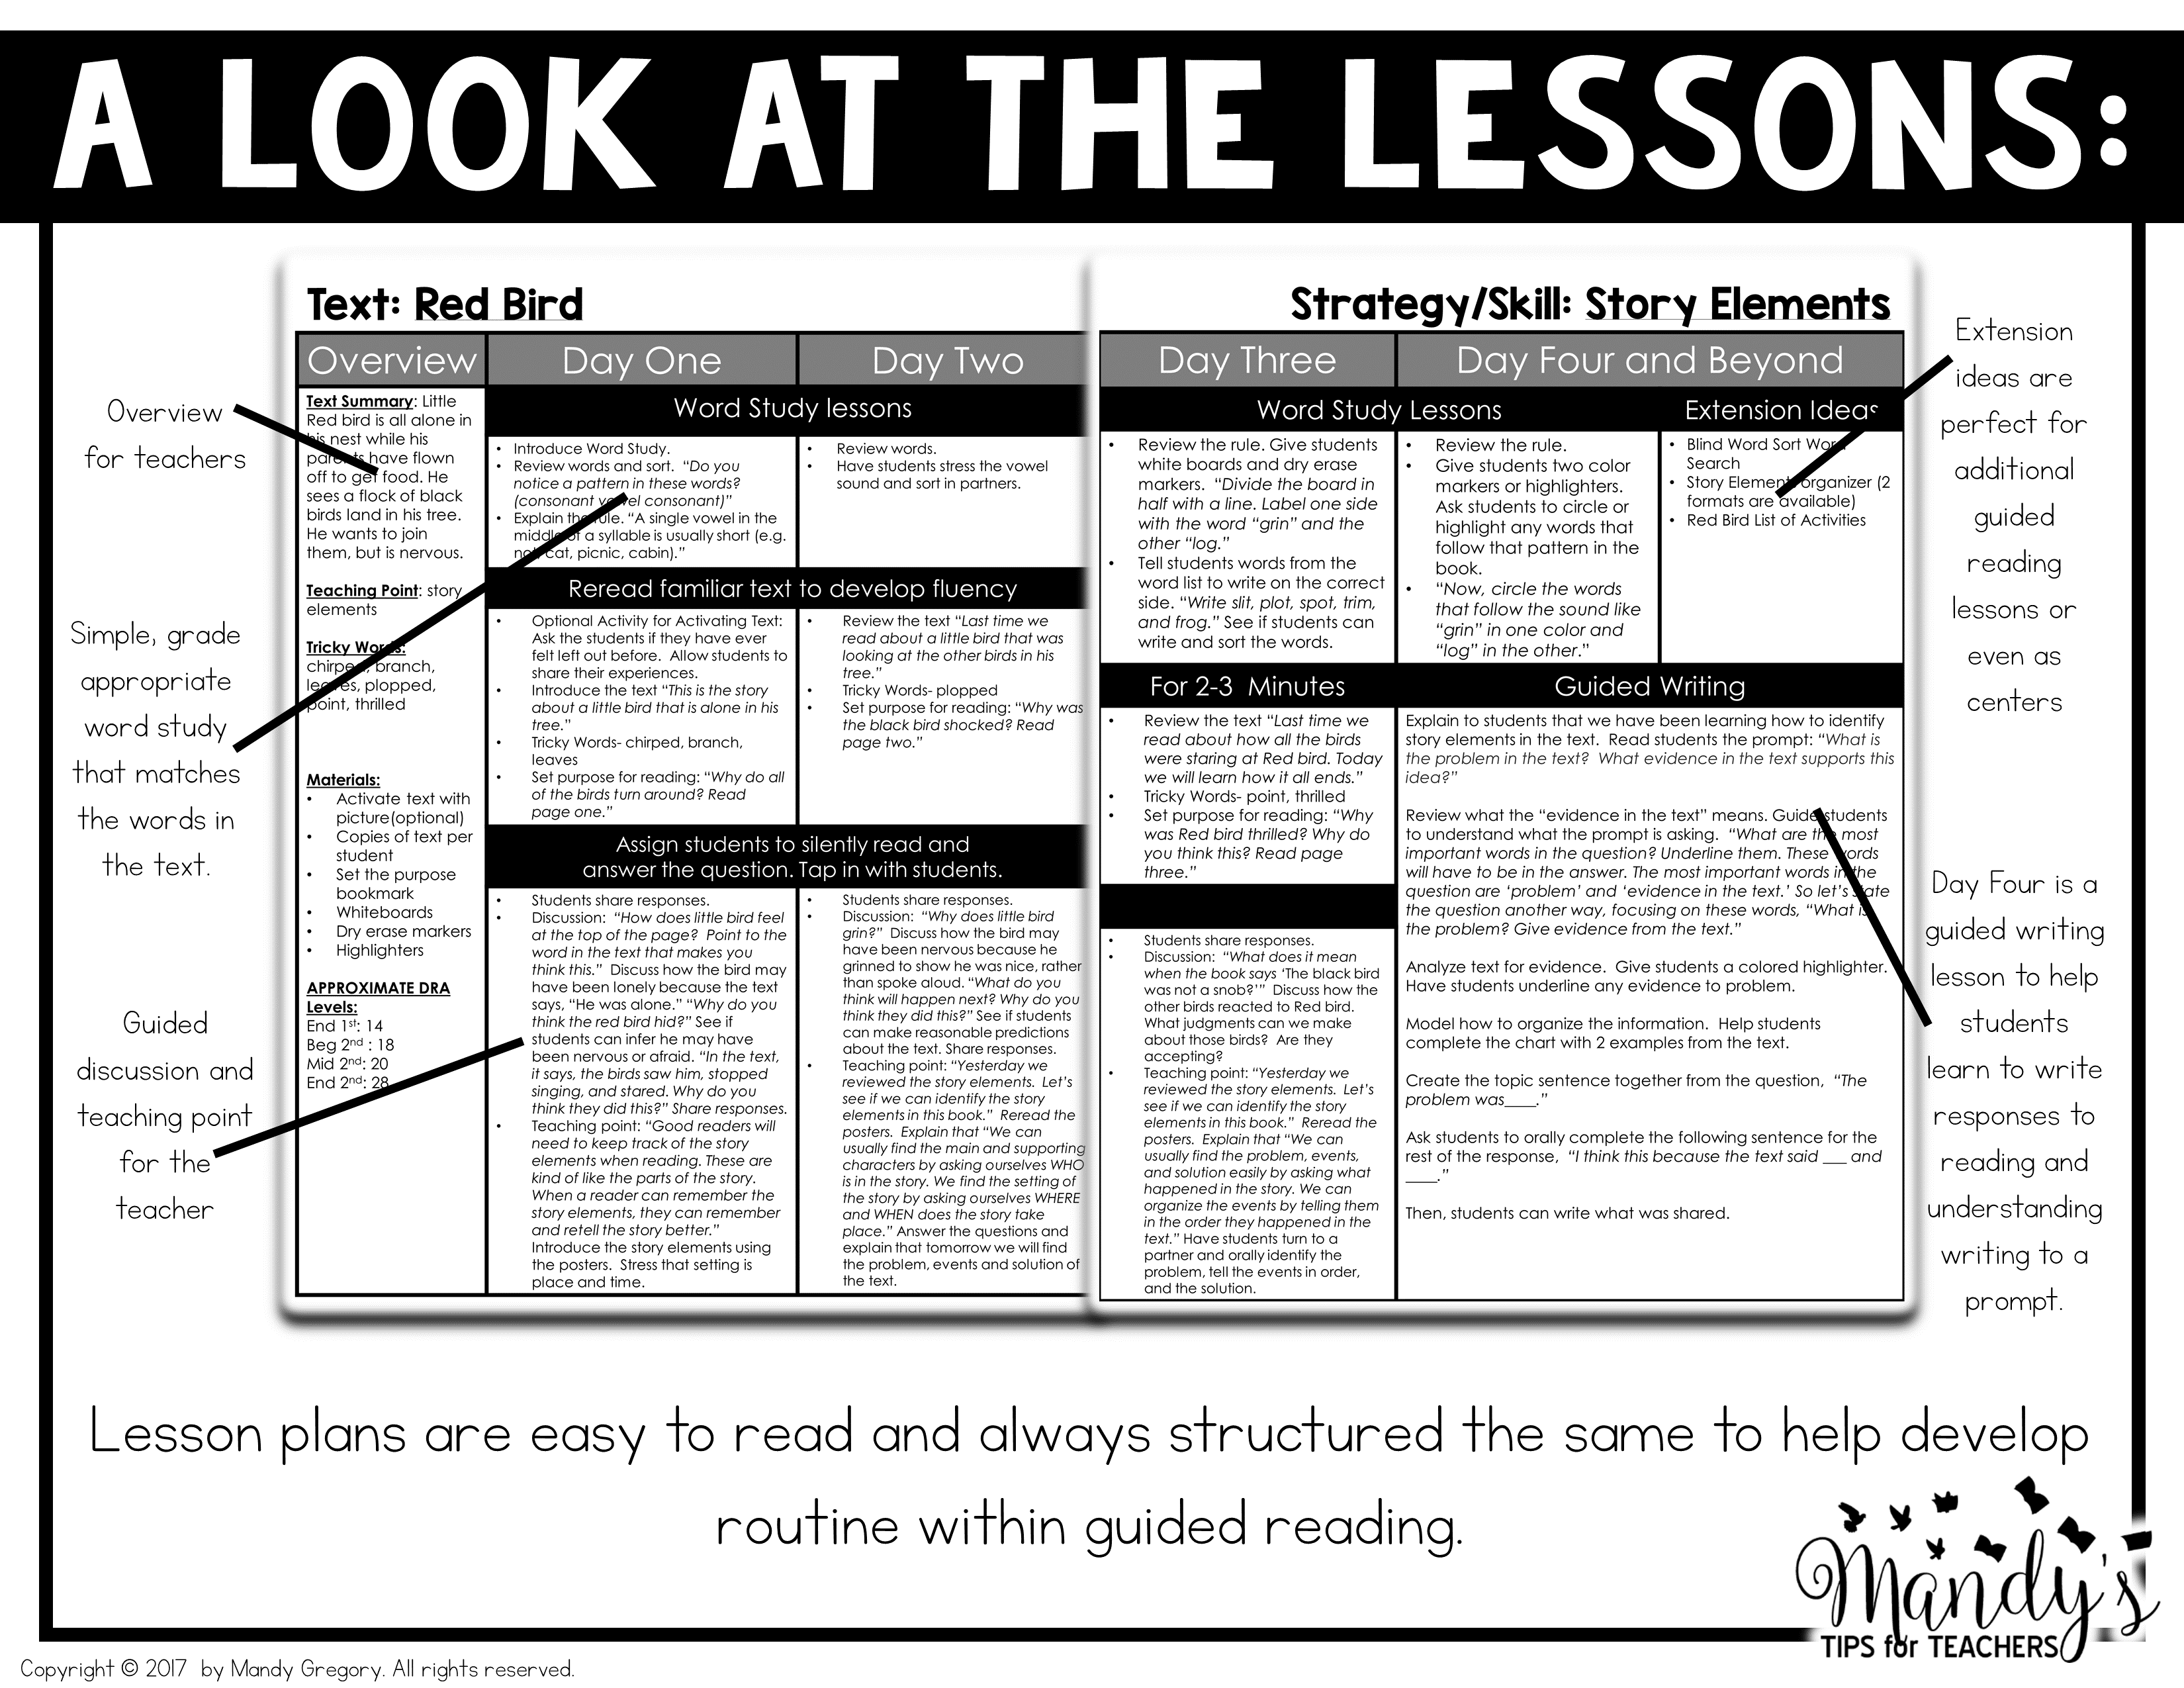 A closer look at the Mastering Guided Reading lesson plans